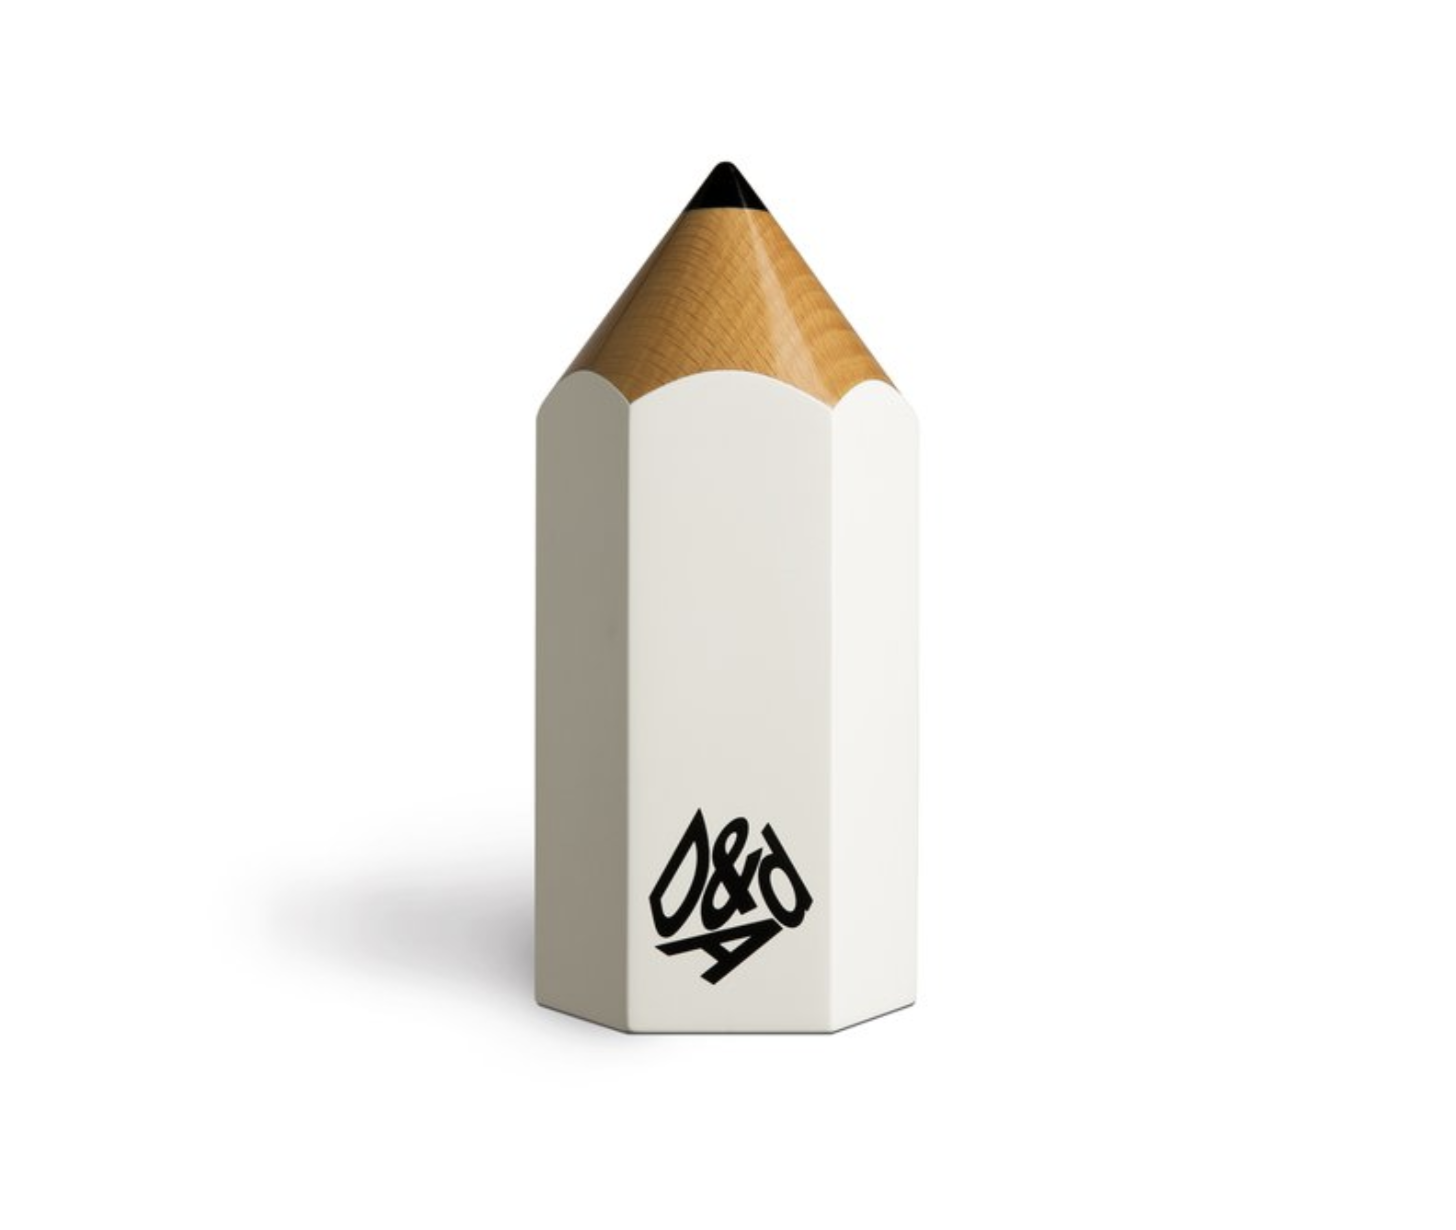 Like D&AD Impact, many industry awards shows are encouraging work for good.